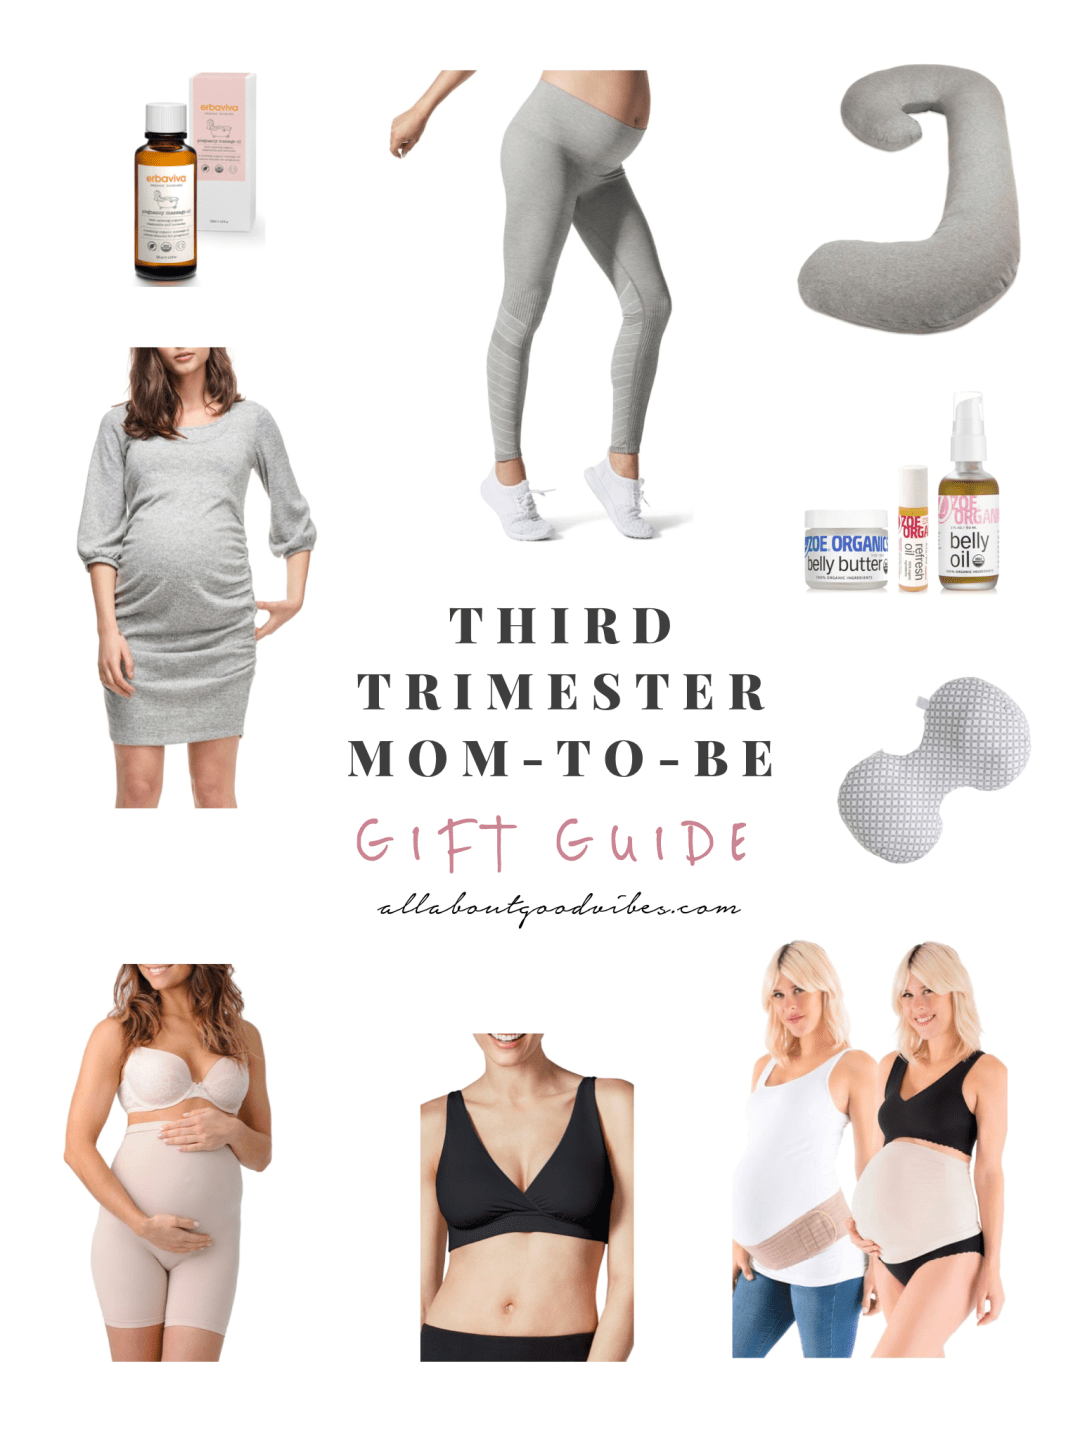 Gift-Guide-for-Third-Trimester-Mom-To-Be_Allaboutgoodvibes.com IG @thevibescloset Molly Larsen Style Blogger